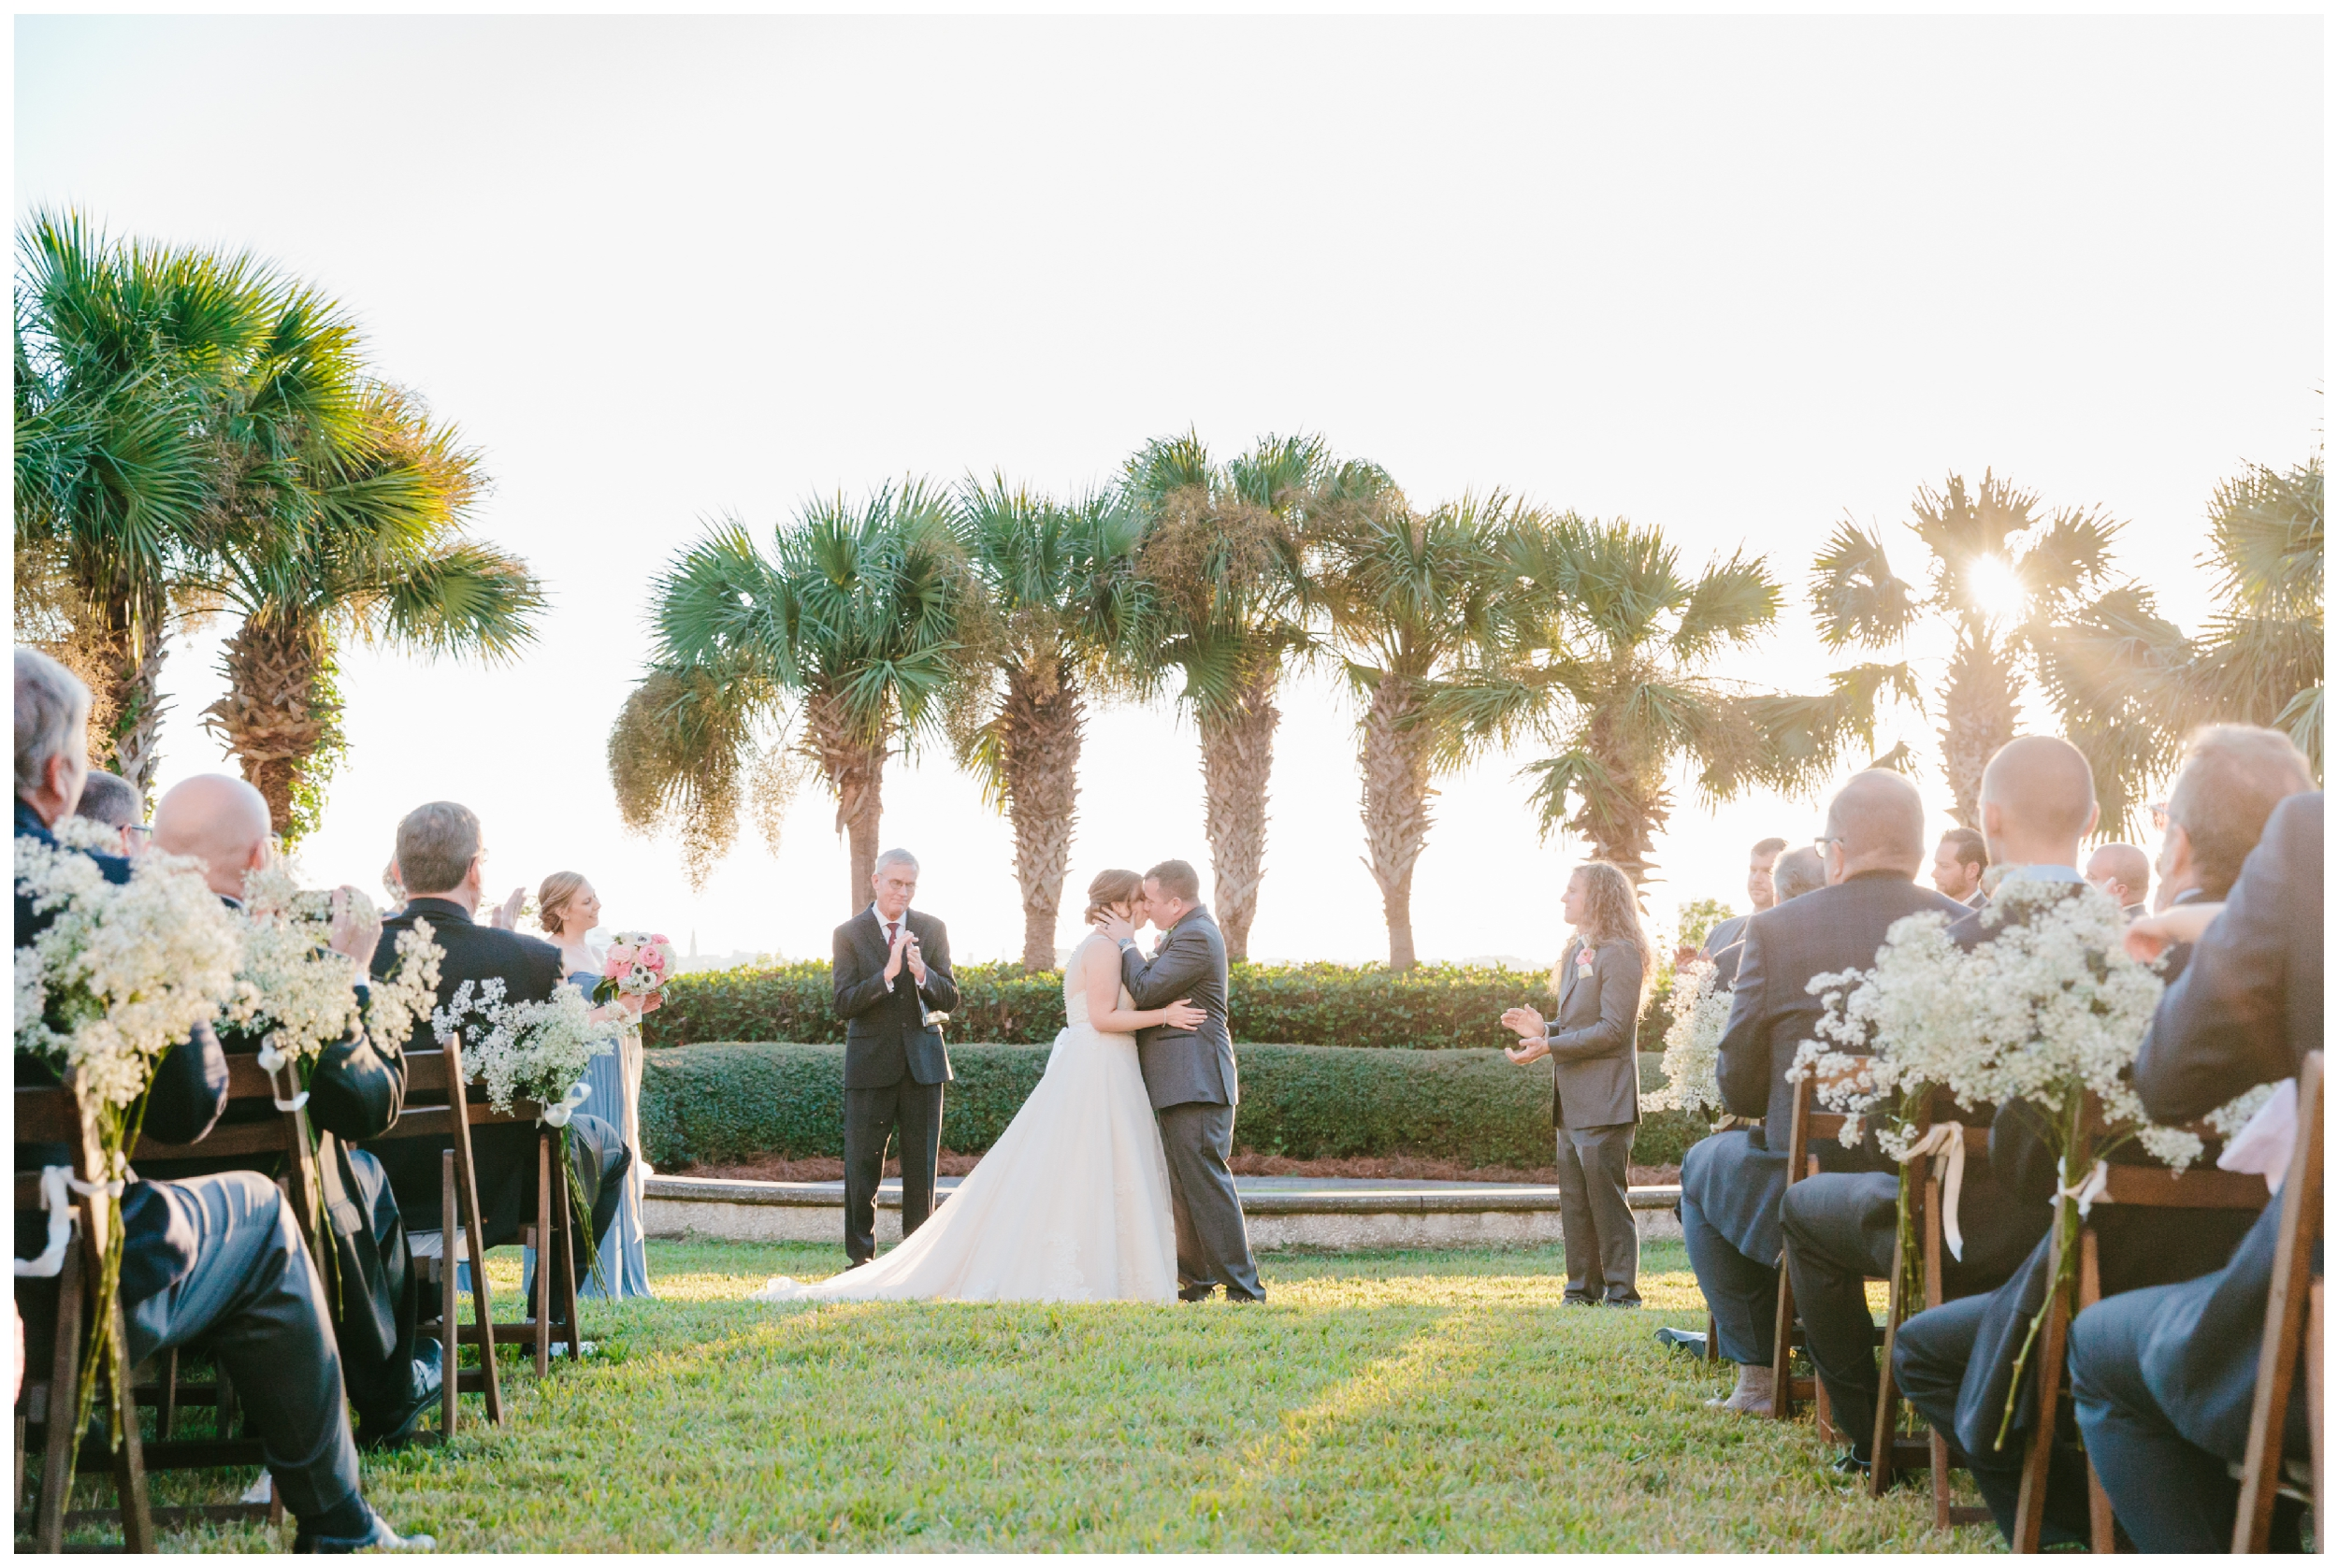 first kiss on the lawn of harborside east in mt. pleasant.